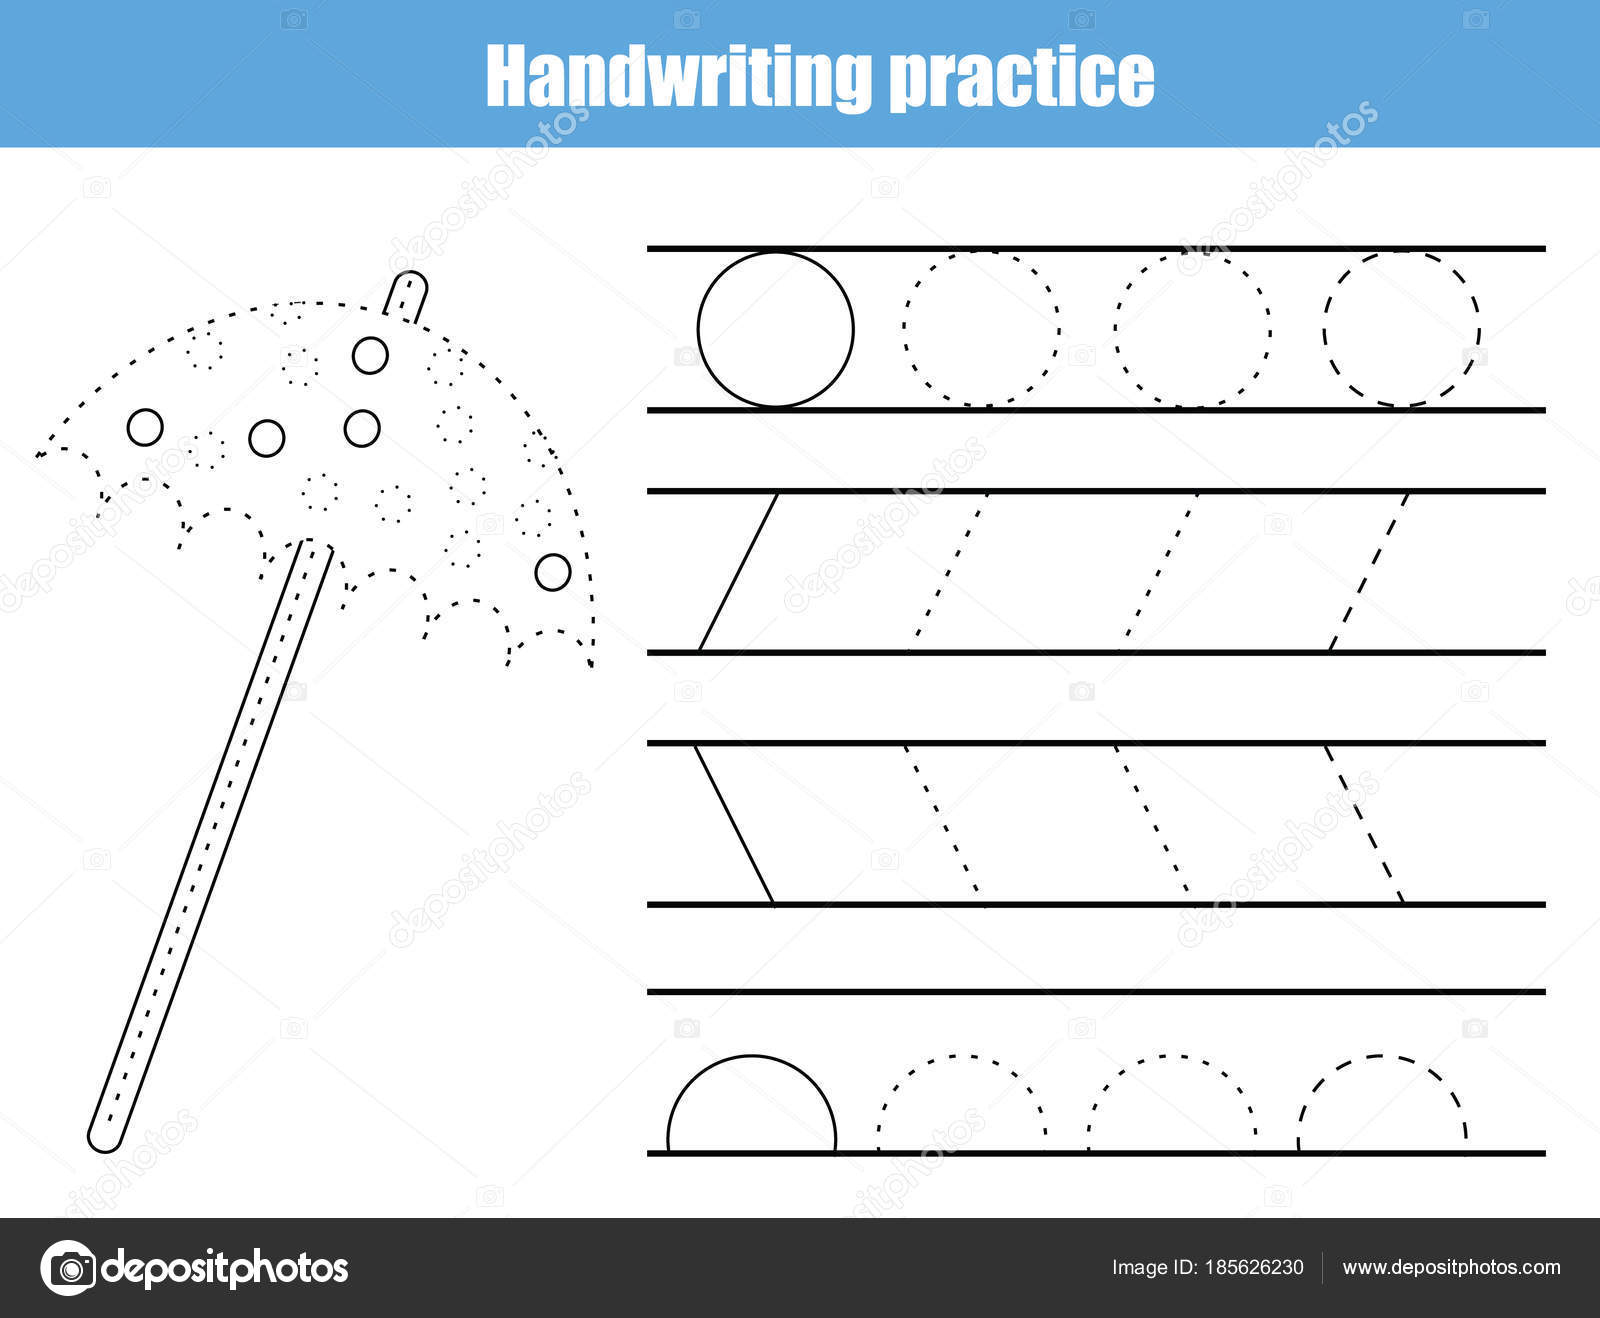 Handwriting Practice Sheet. Educational Children Game, Printable Worksheet  For Kids. Writing Training Printable Worksheet With Arc, Circles And Lines  And ...